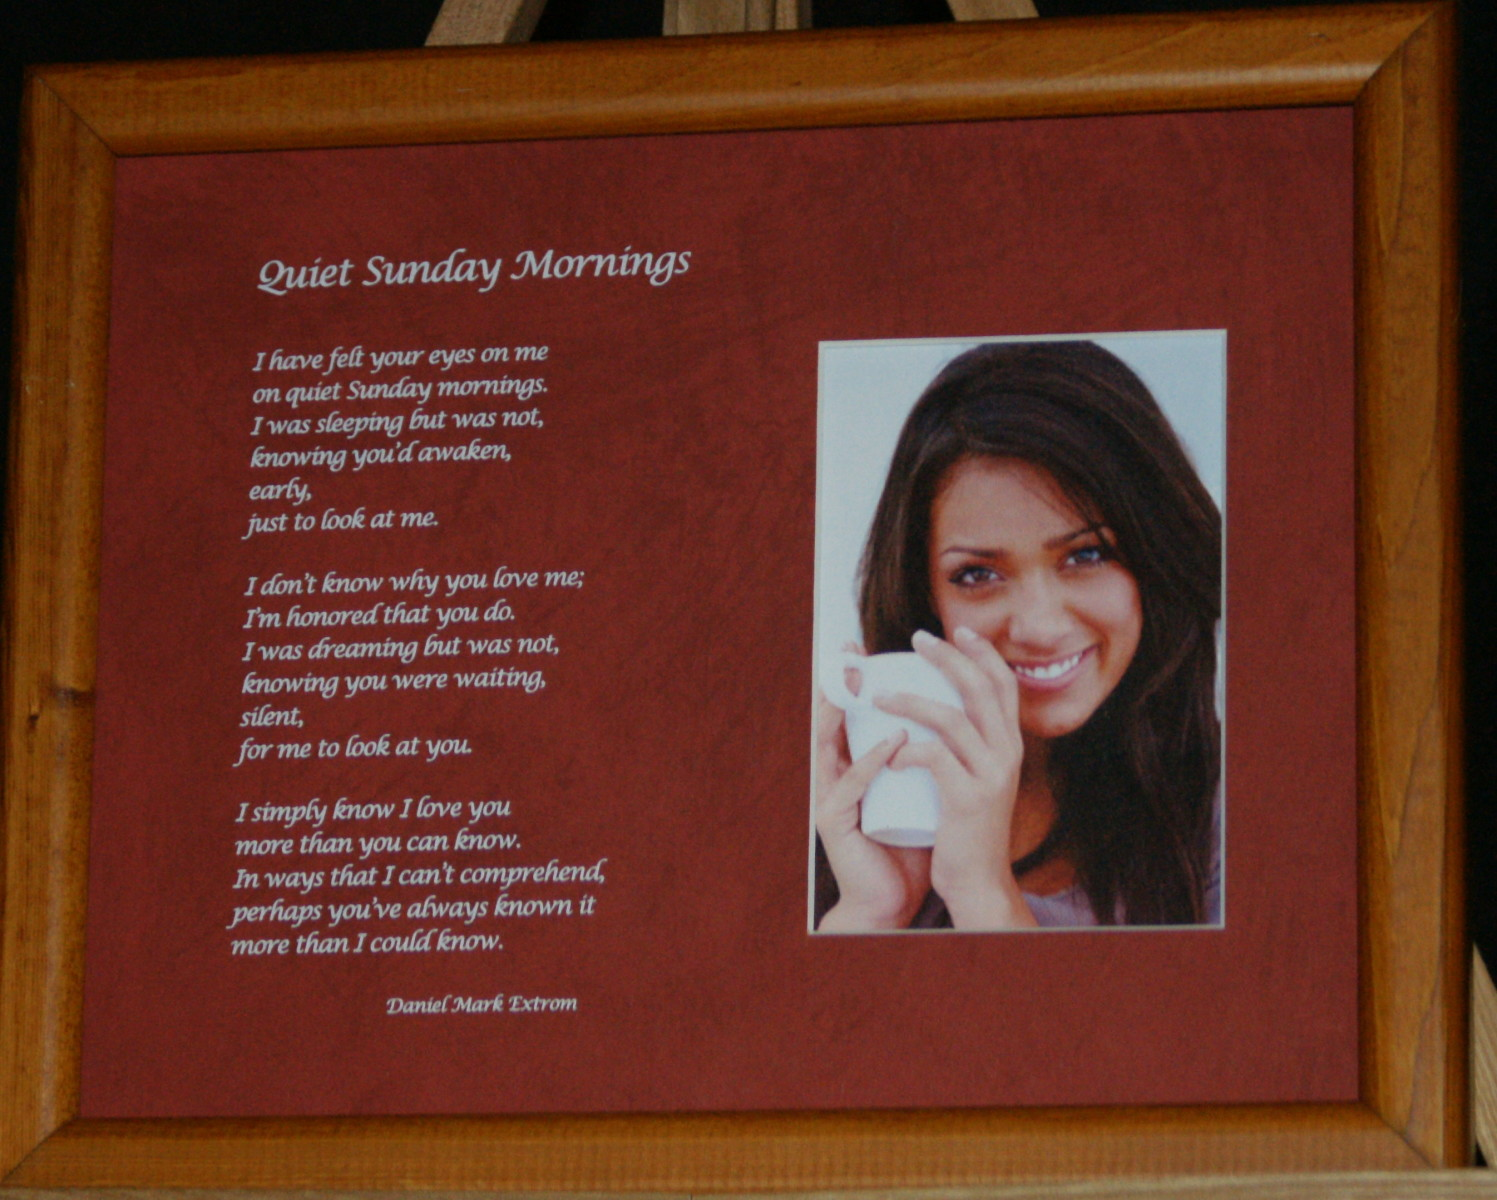 Quiet Sunday Mornings: A Love Poem